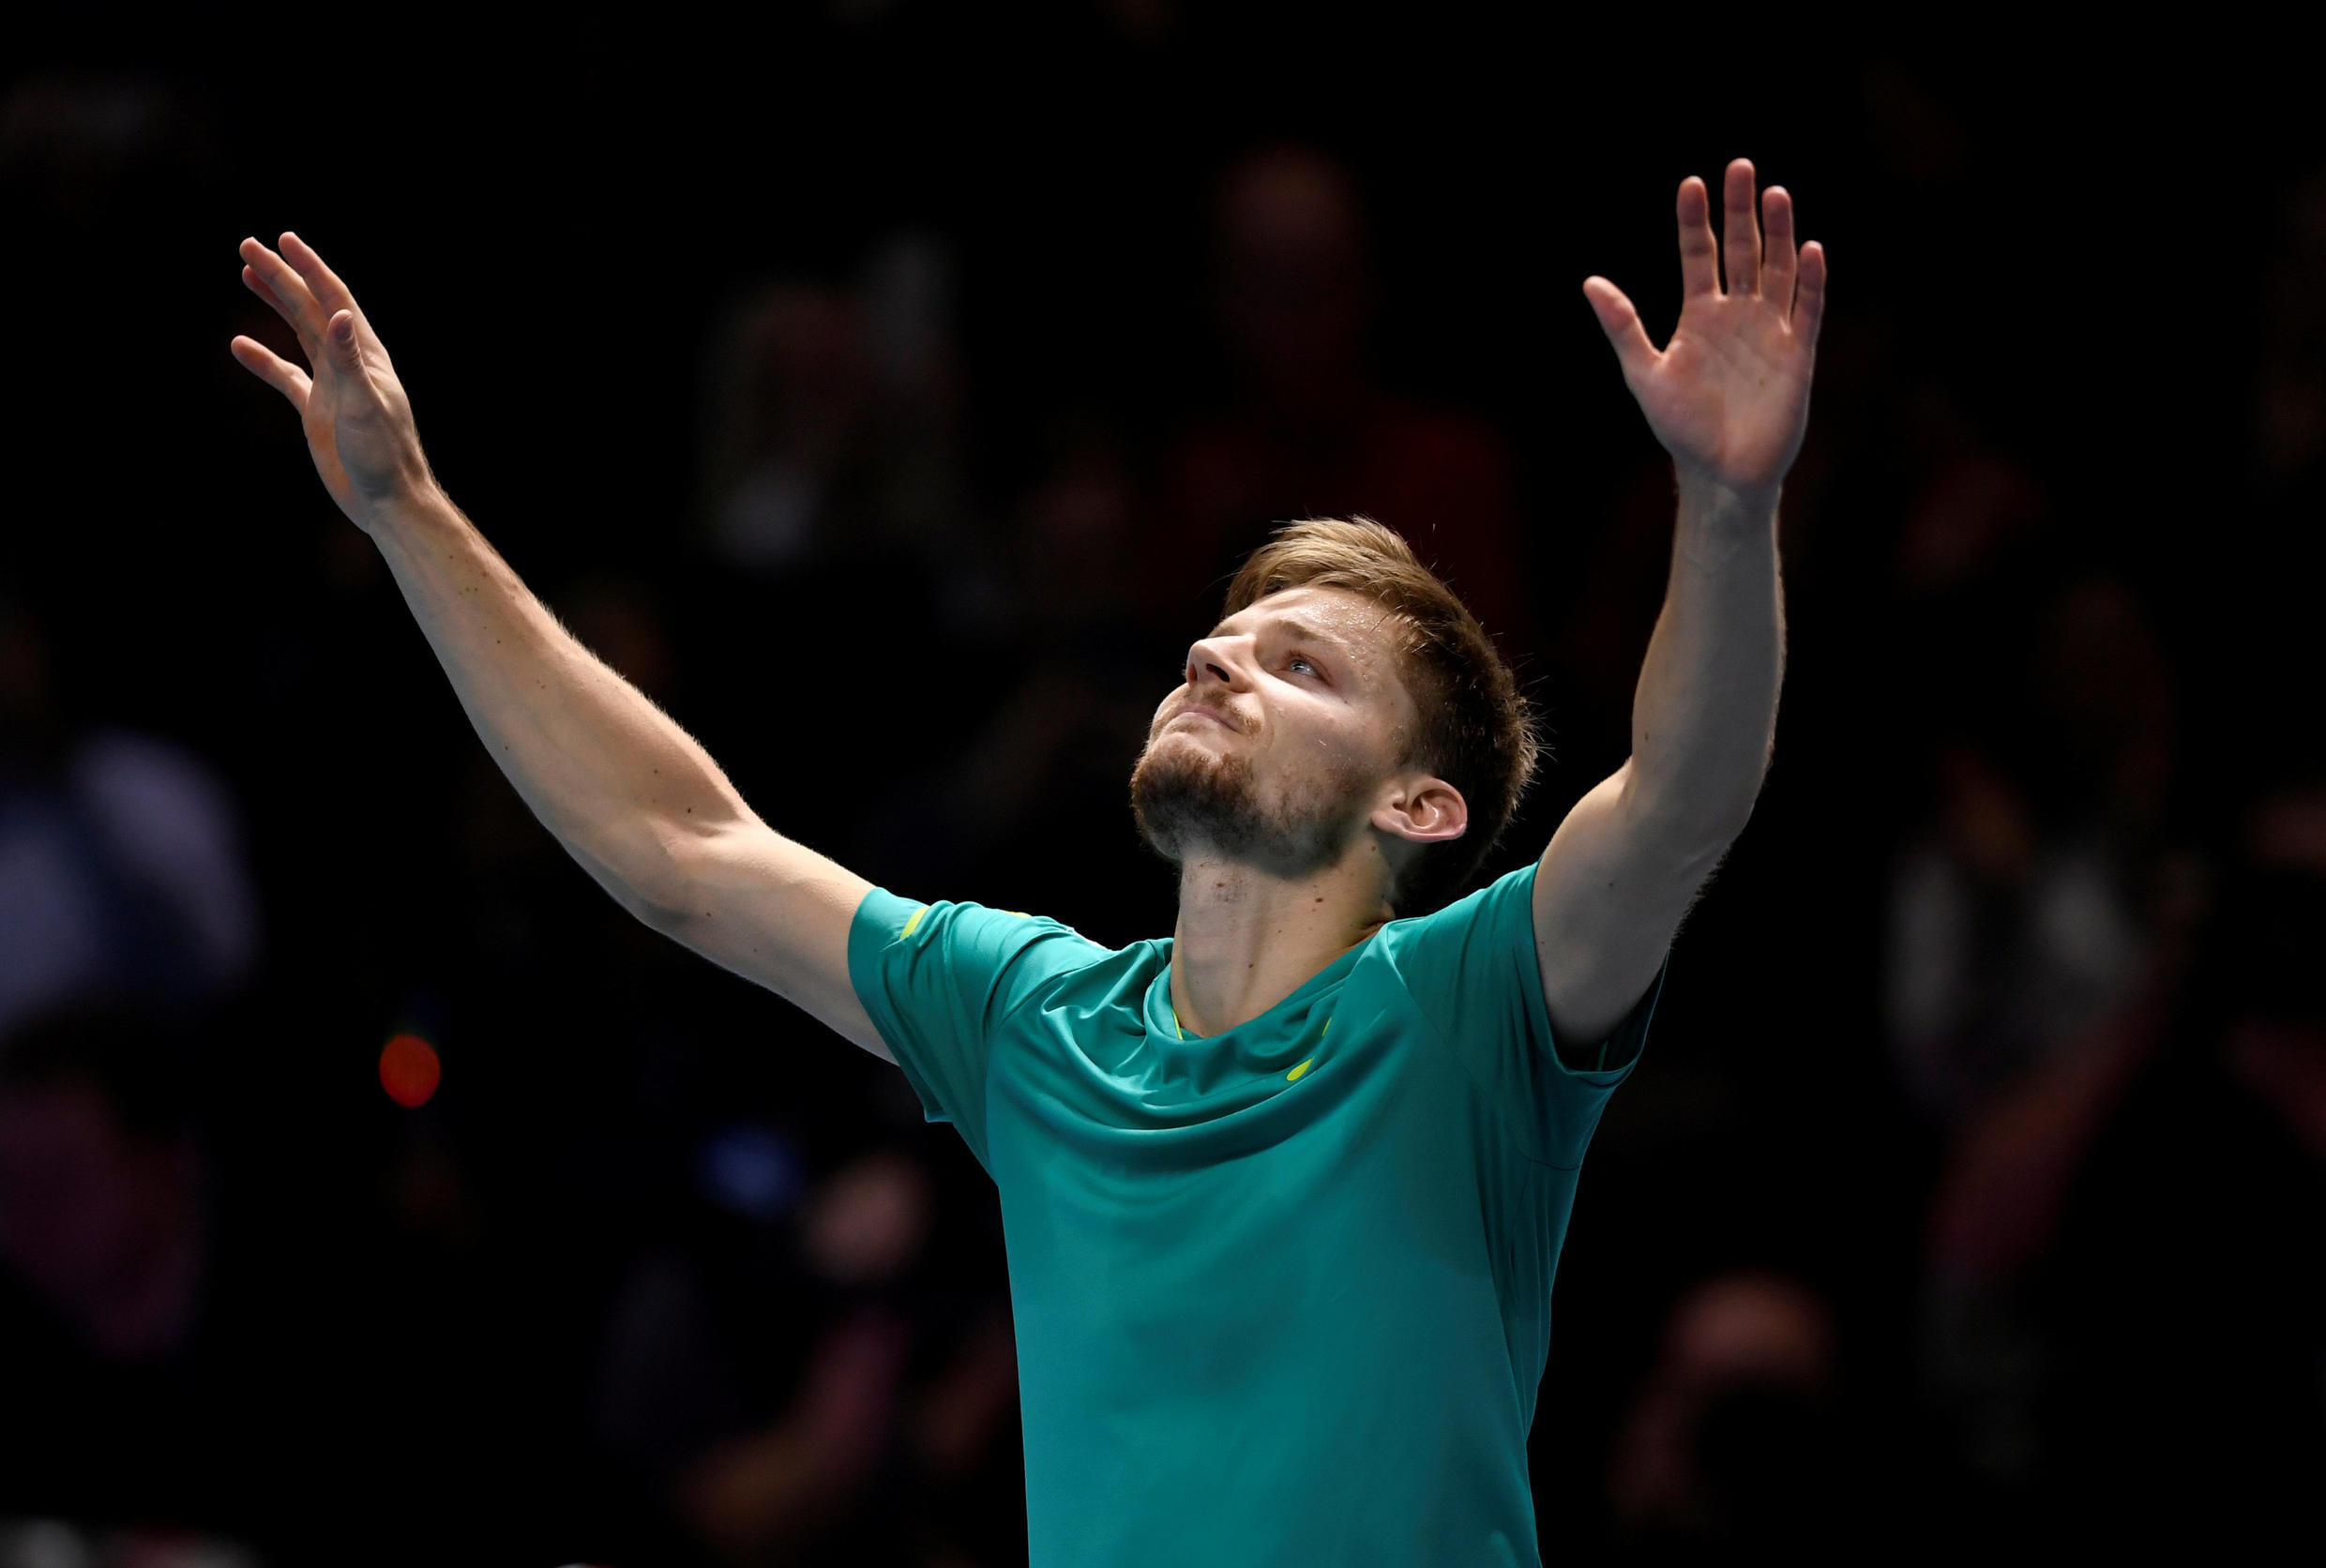 David Goffin beat top seed Rafael Nadal in his first match at the ATP Finals on Monday.